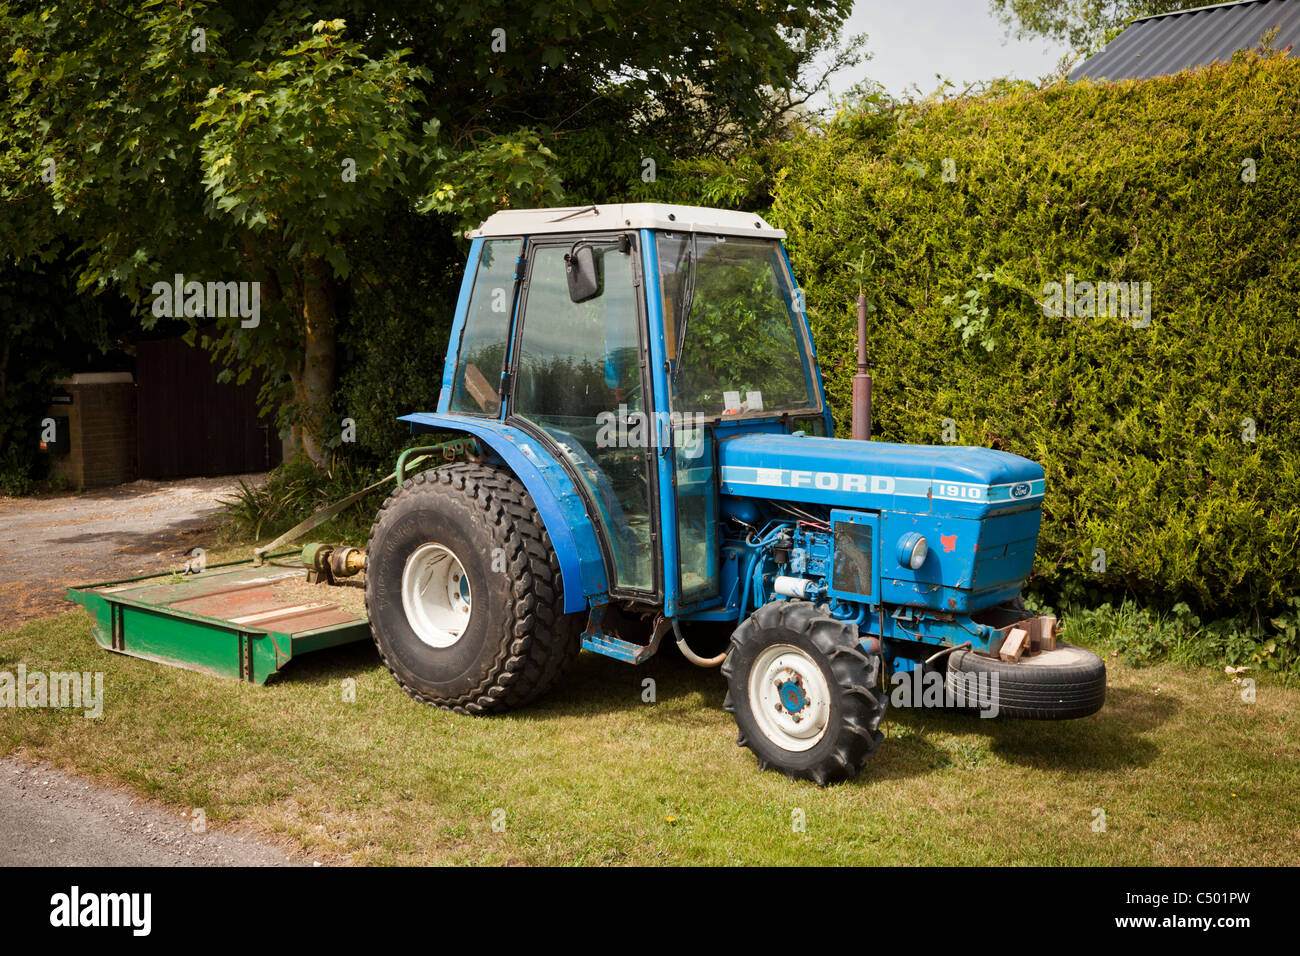 Ford 1910 compact tractor with grass cutting attachment stock image